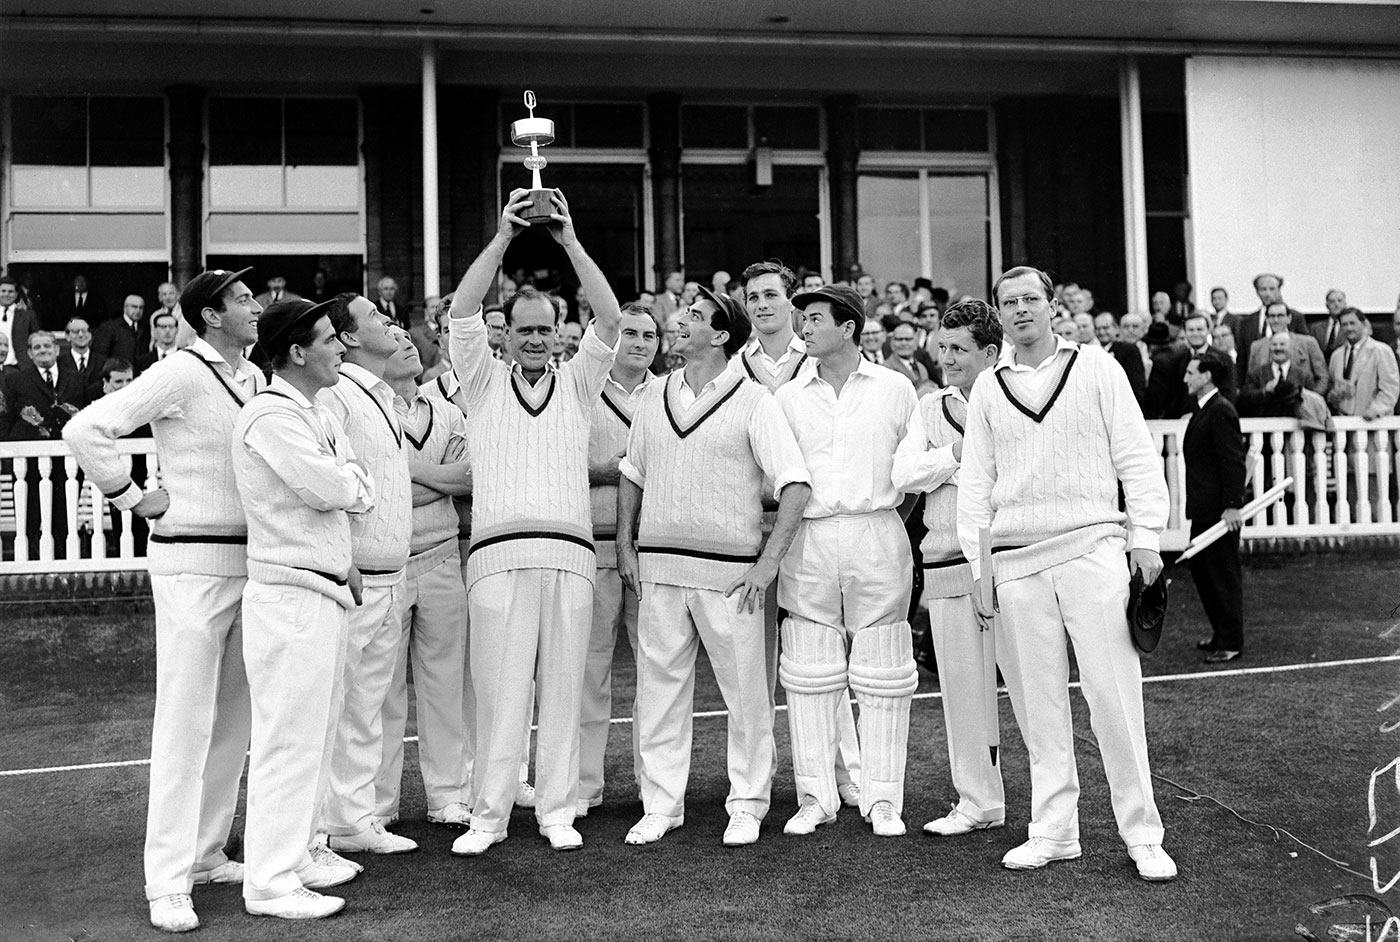 Born On 10 February 1941 In Thurnscoe Hampshire Came From A Cricketing FamilyHis Father John Played For Yorkshire 1937His Younger Brother Alan